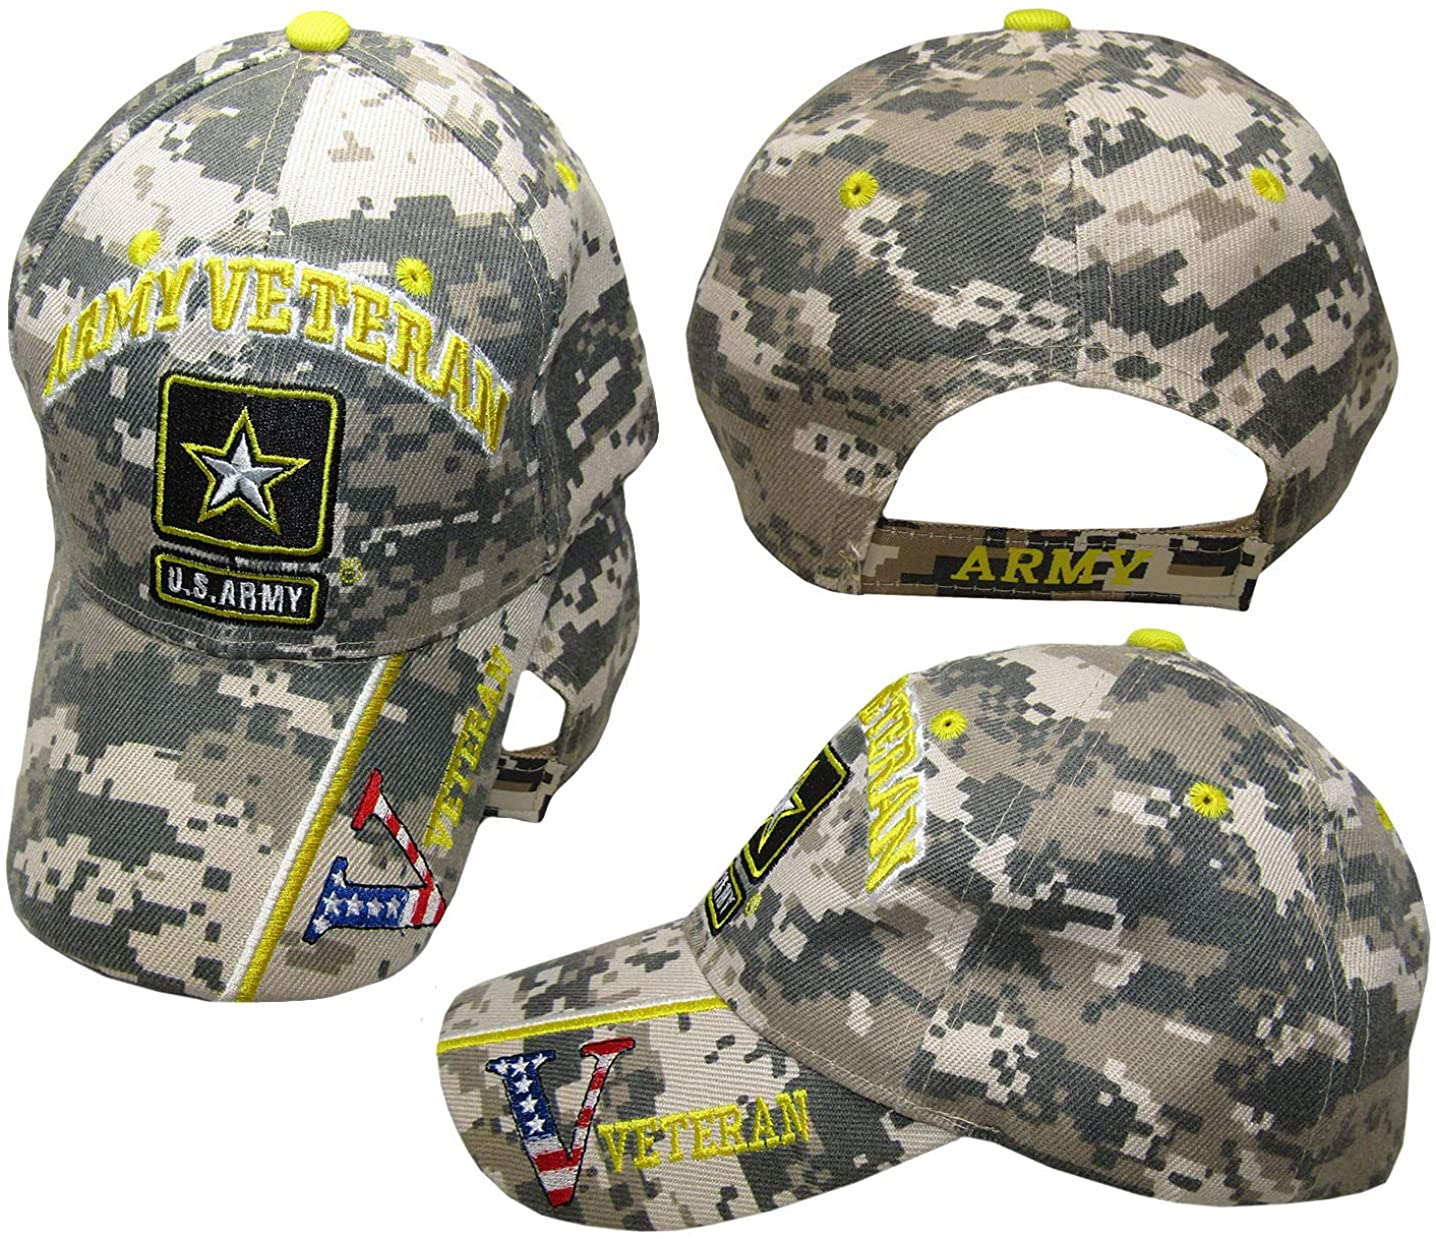 American Wholesale Superstore U.S. Army Star Veteran Vet USA Flag V ACU Digital Camouflage Camo Embroidered Cap Hat